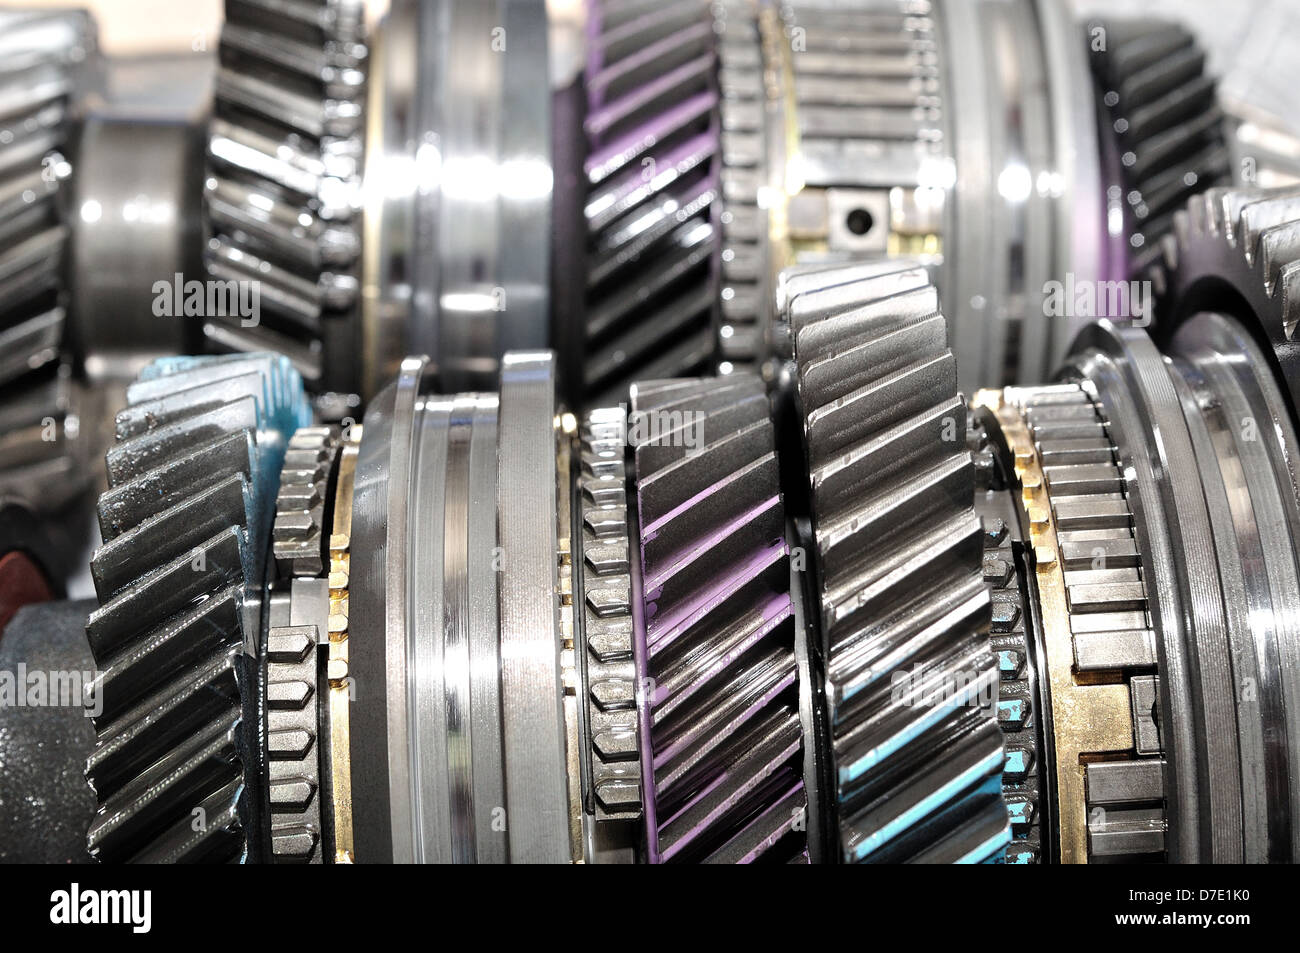 Car Gearbox Parts Stock Photo 56242340 Alamy